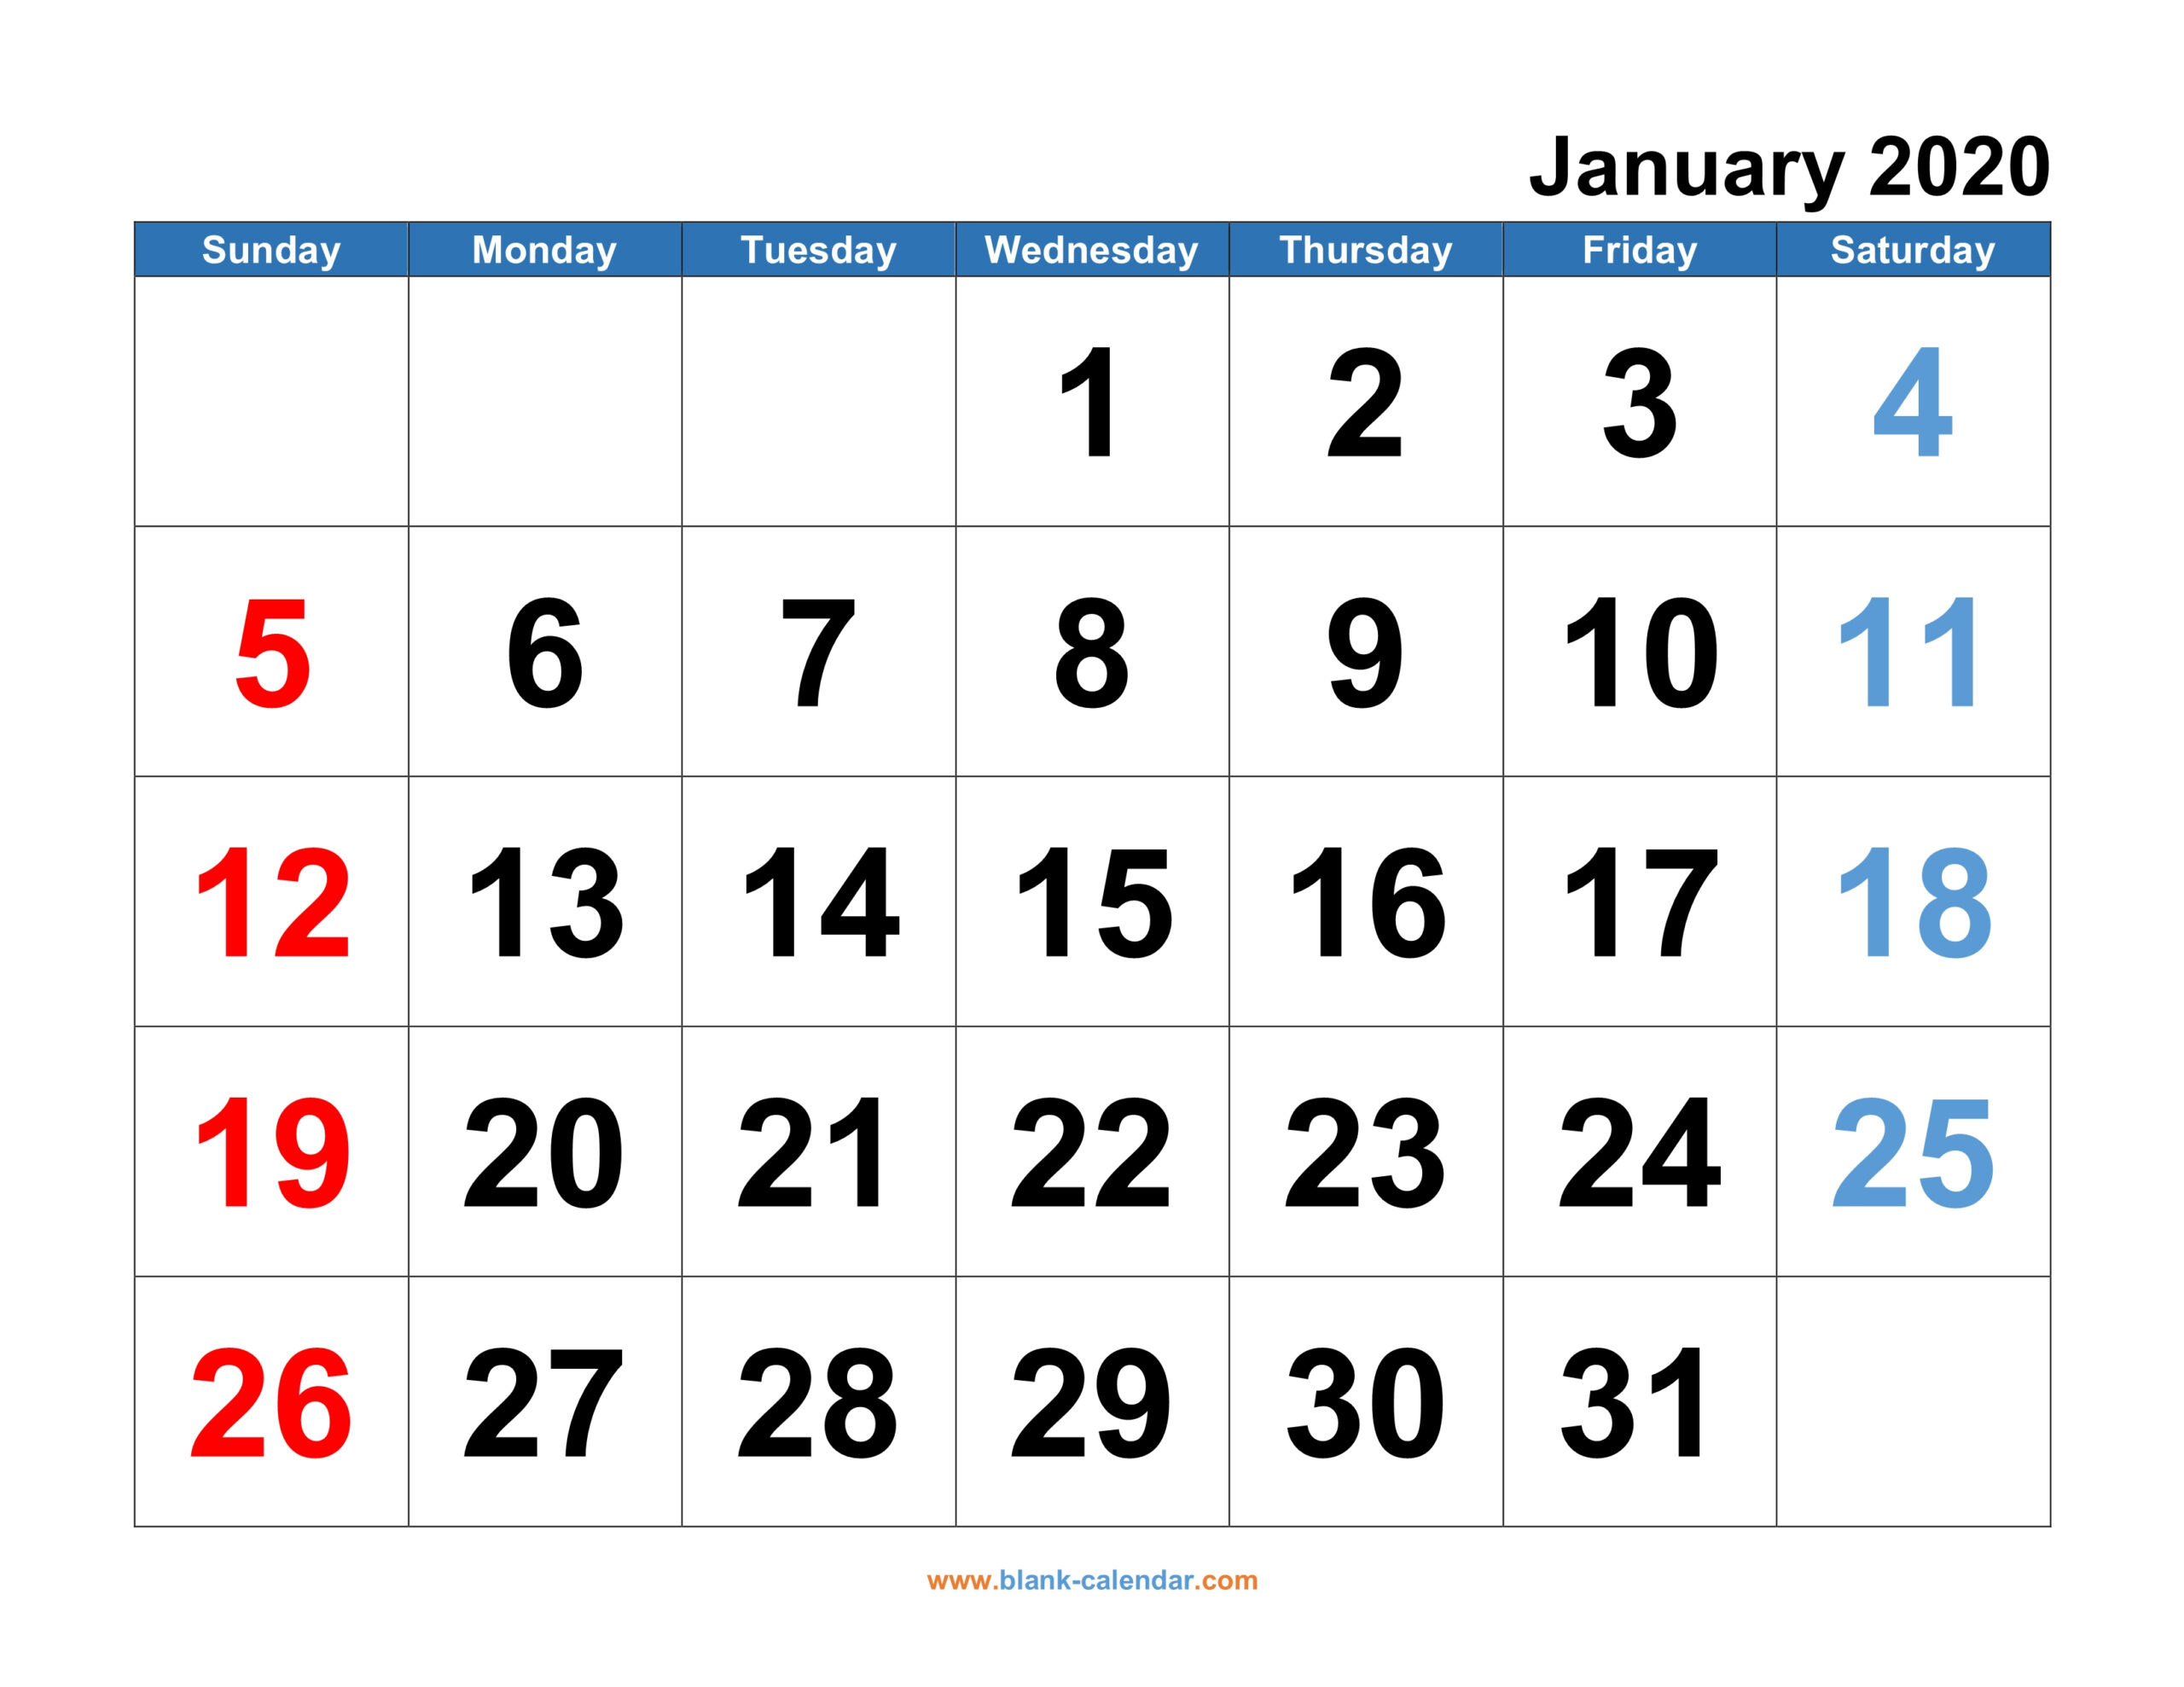 Monthly Calendar 2020 | Free Download, Editable And Printable intended for Free Printable Calendar Numbers